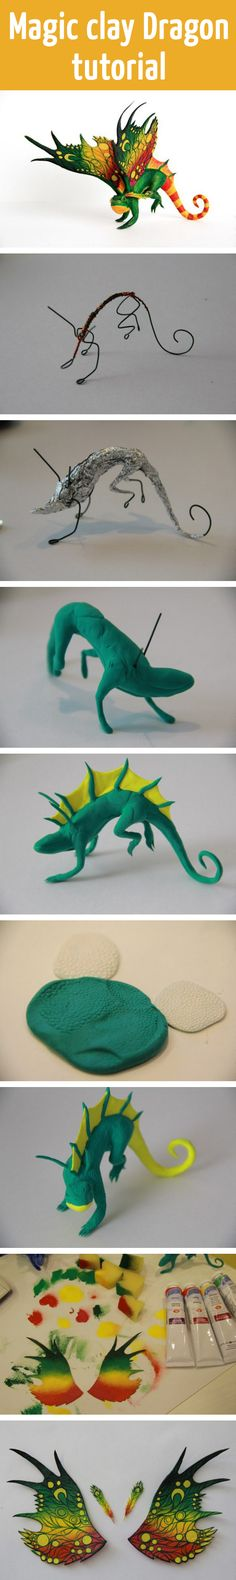 Magic clay Dragon tutorial